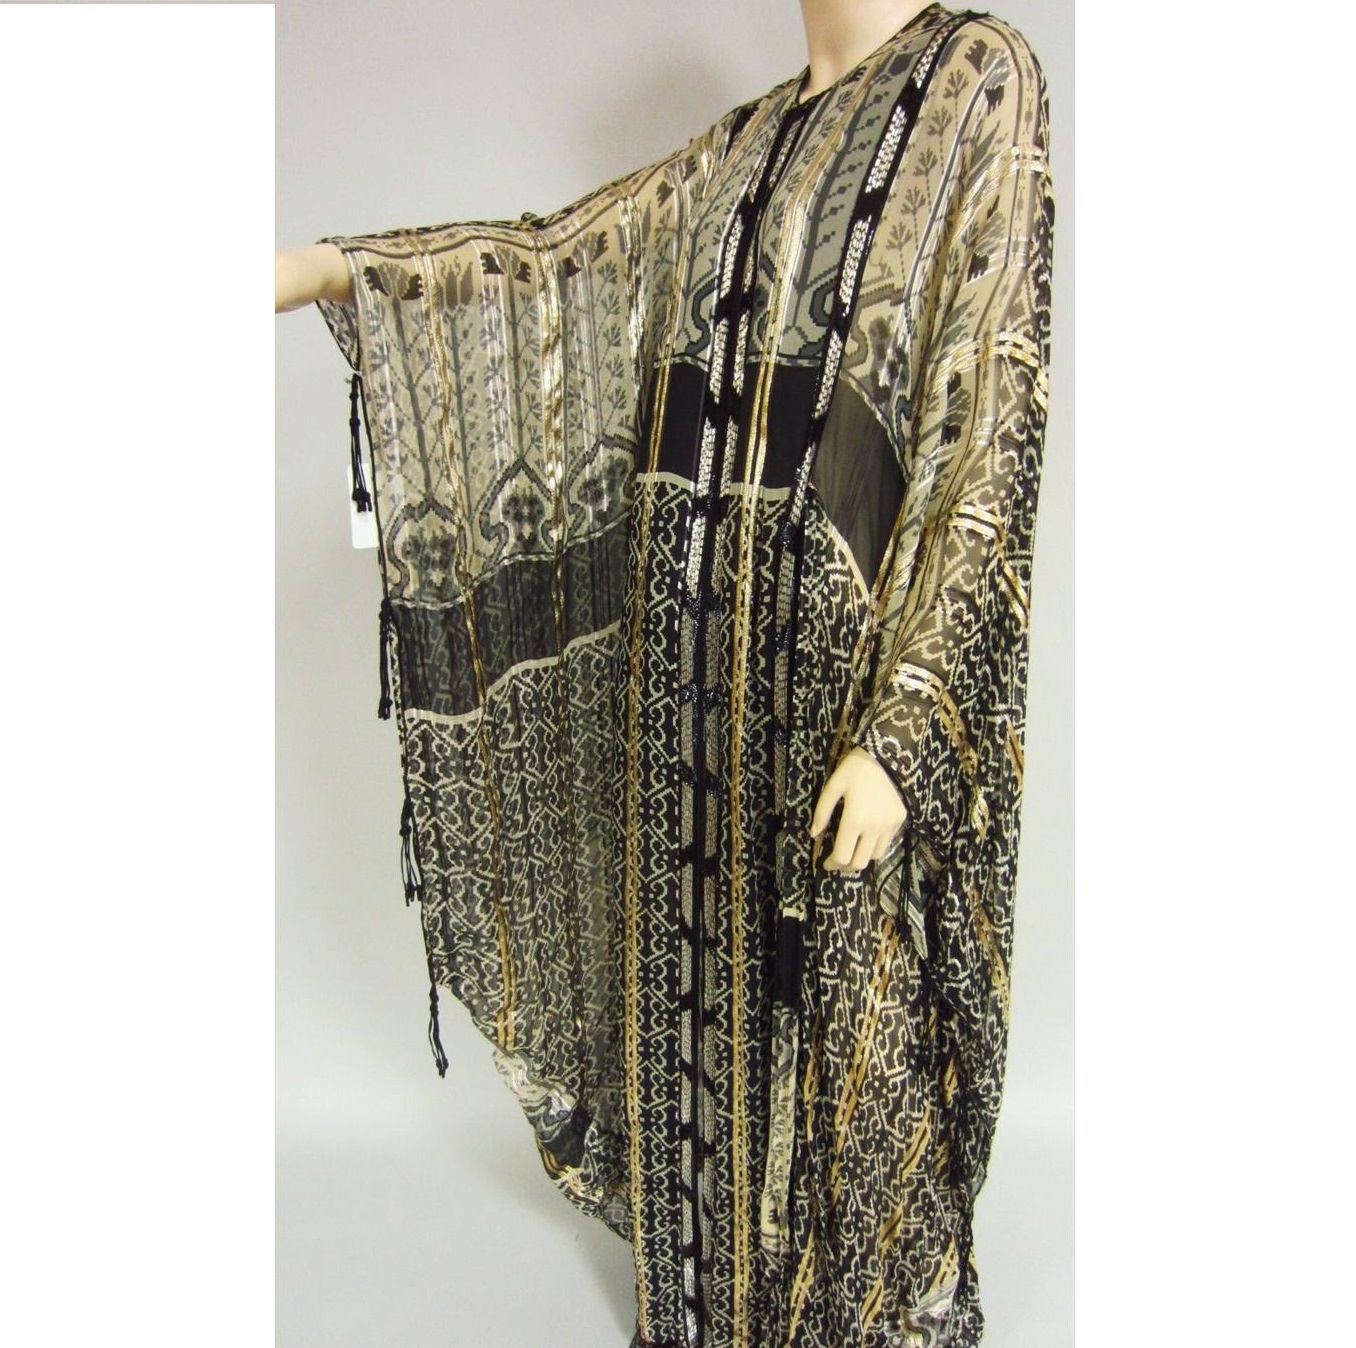 Vintage Black And White Beaded Kaftan By Thea Porter. Sold For $2,350.